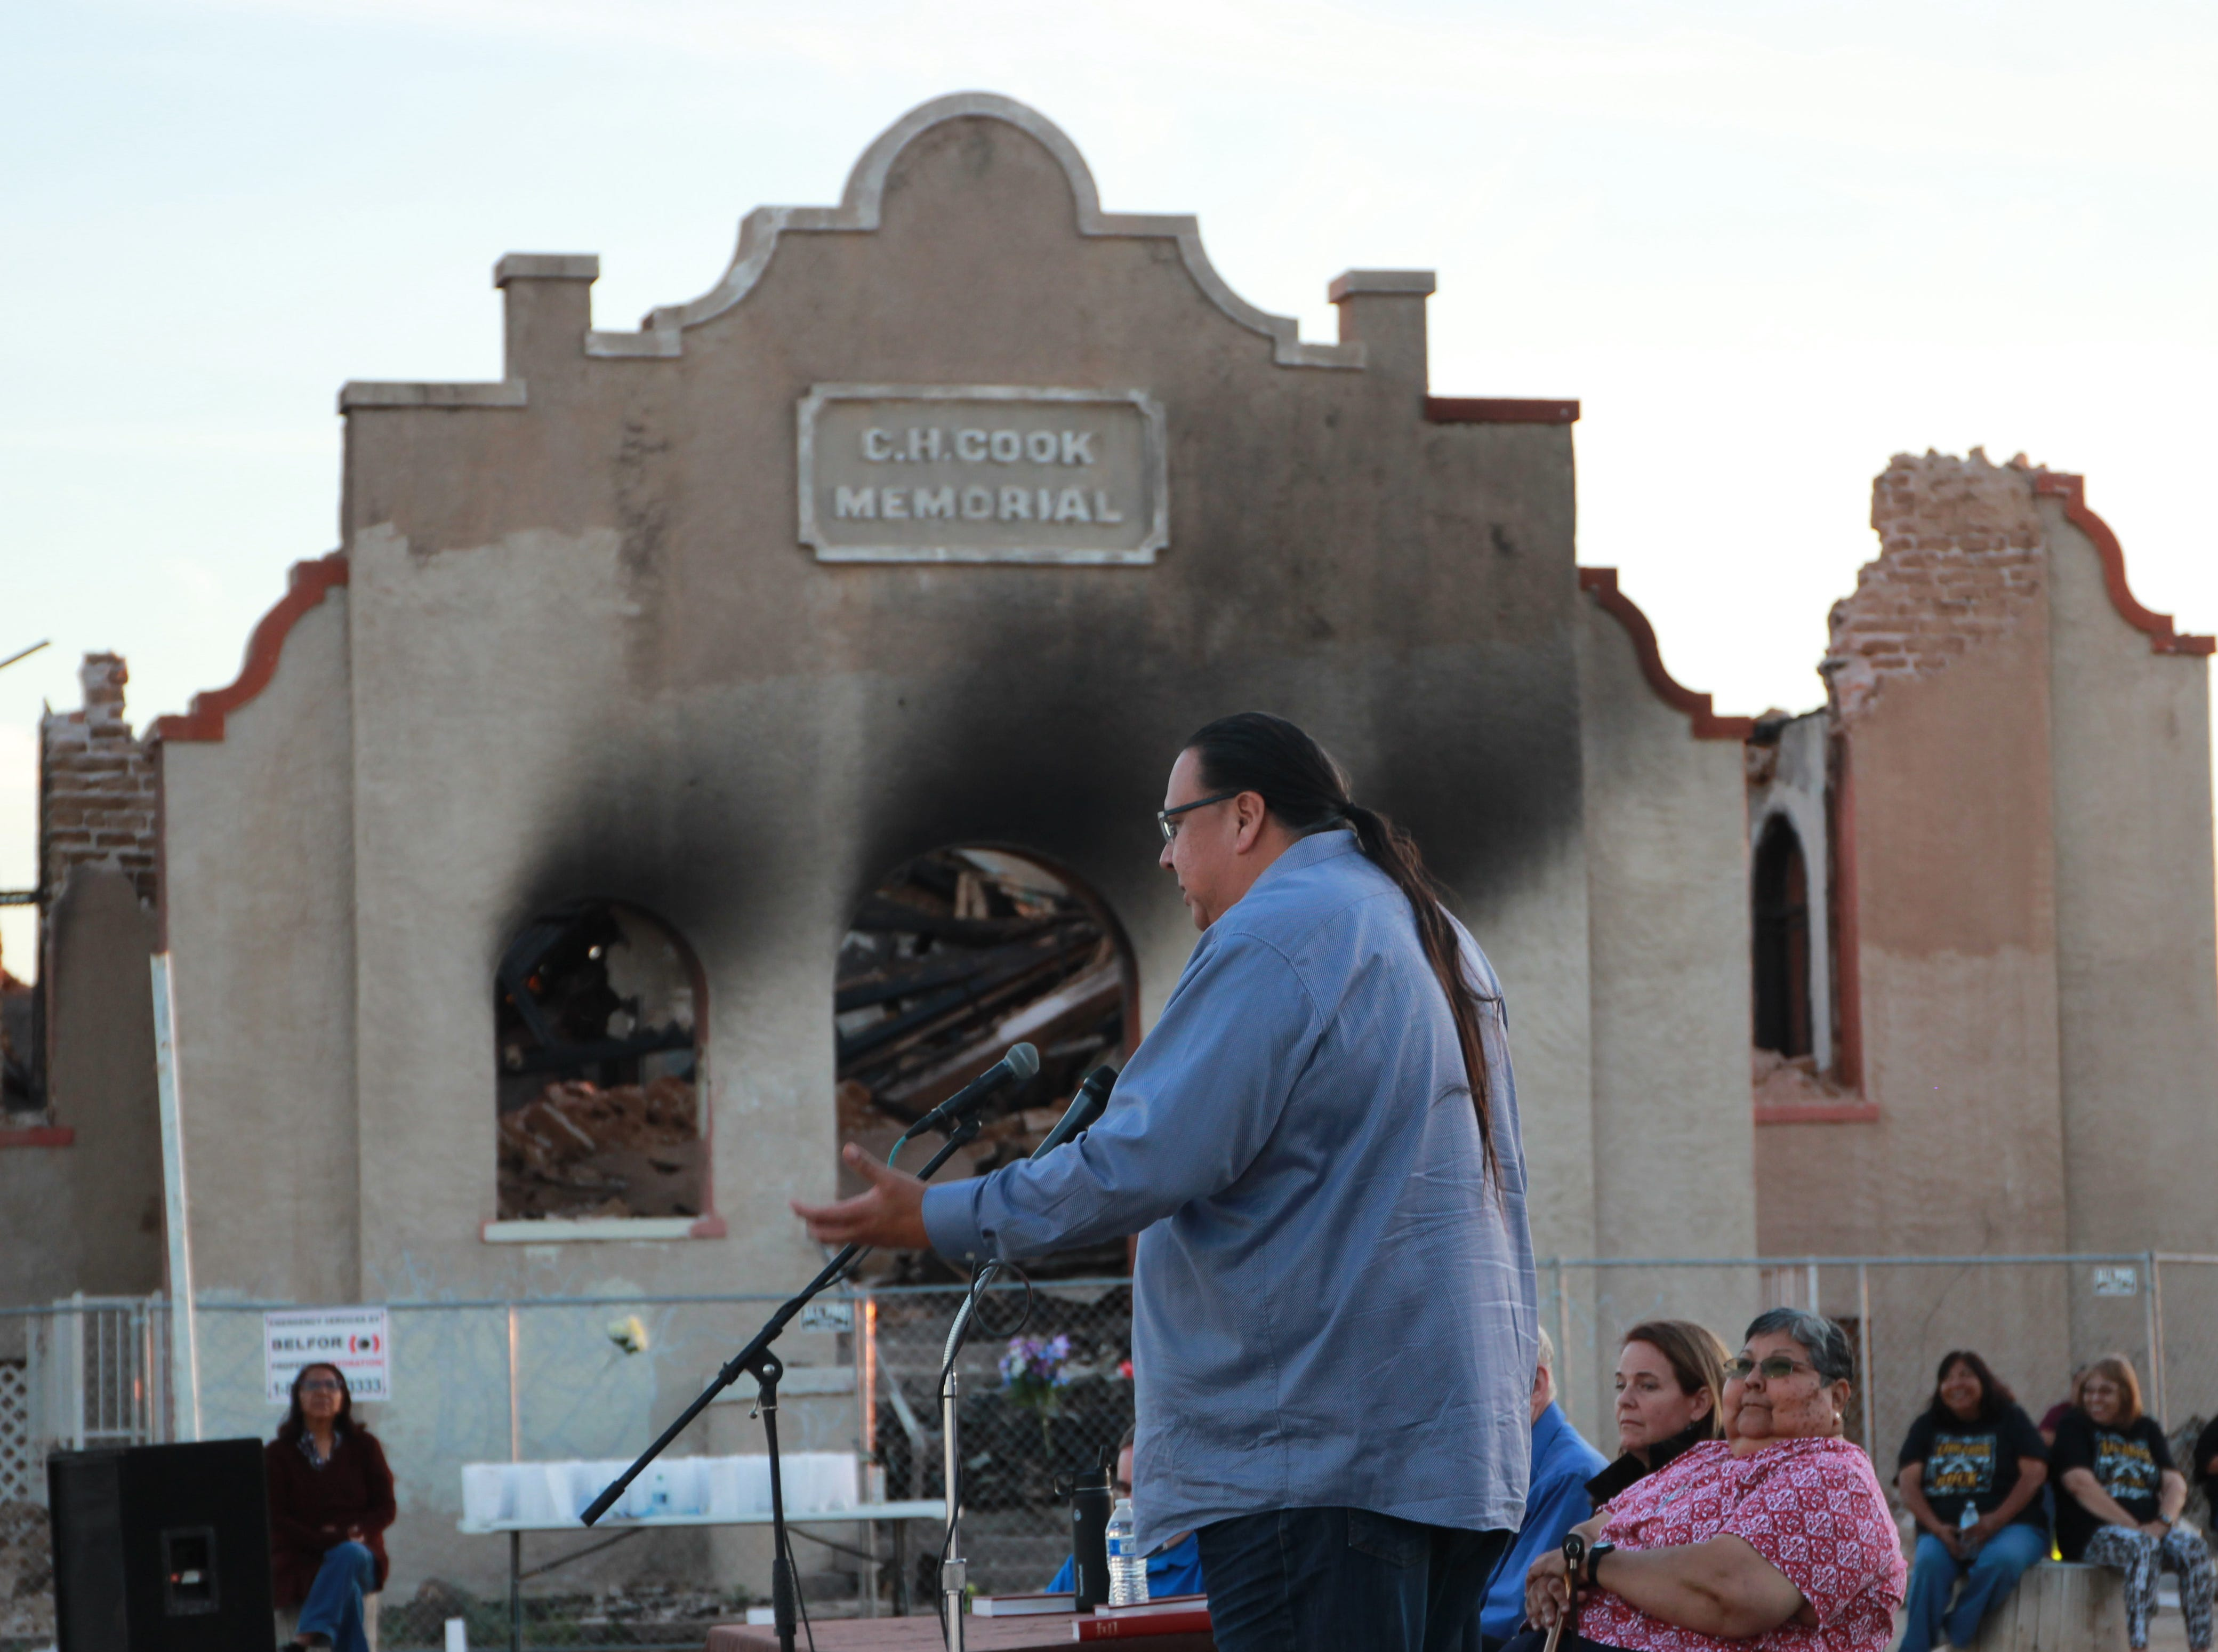 Governor of the Gila River Indian Community, Stephen Roe Lewis, shares his memories of the church.